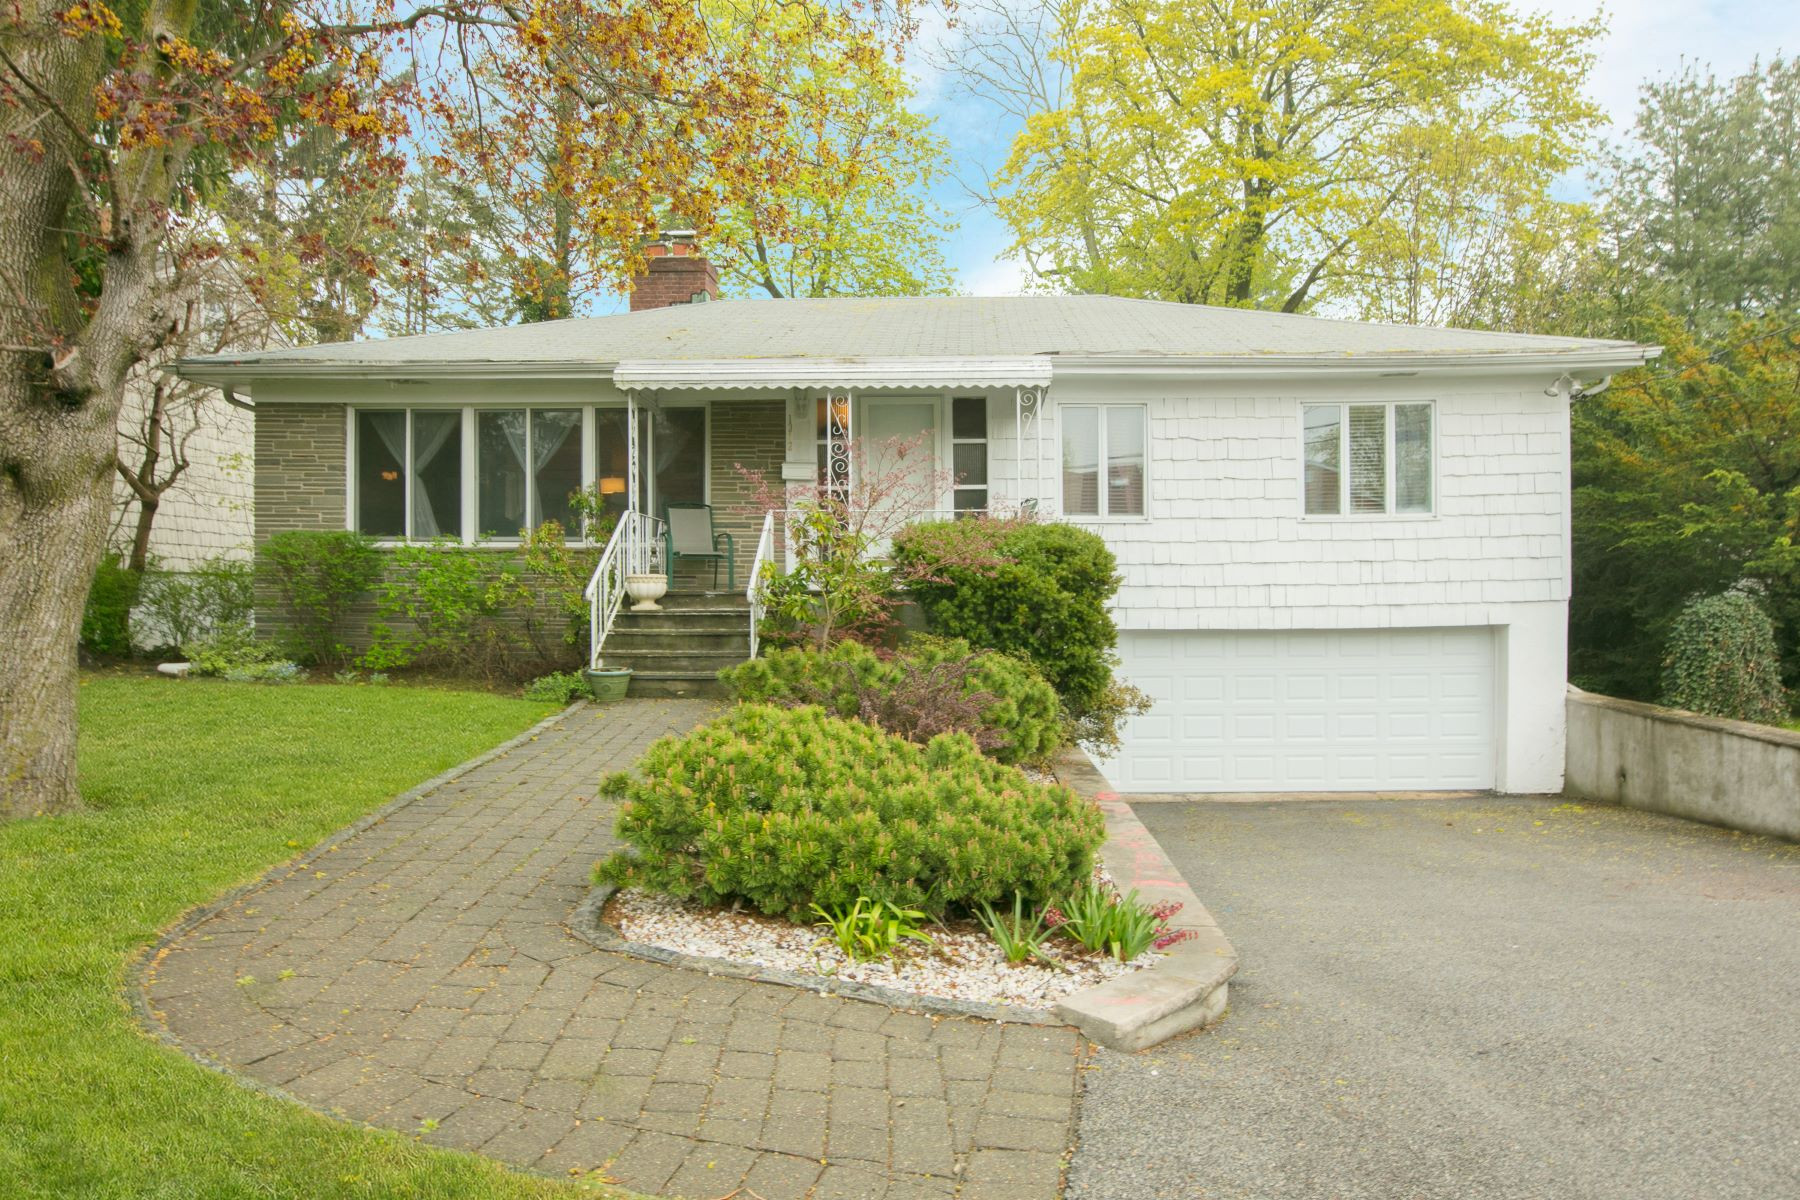 Single Family Home for Rent at Fabulous Rental Property 1312 Birch Hill Lane Mamaroneck, New York 10543 United States